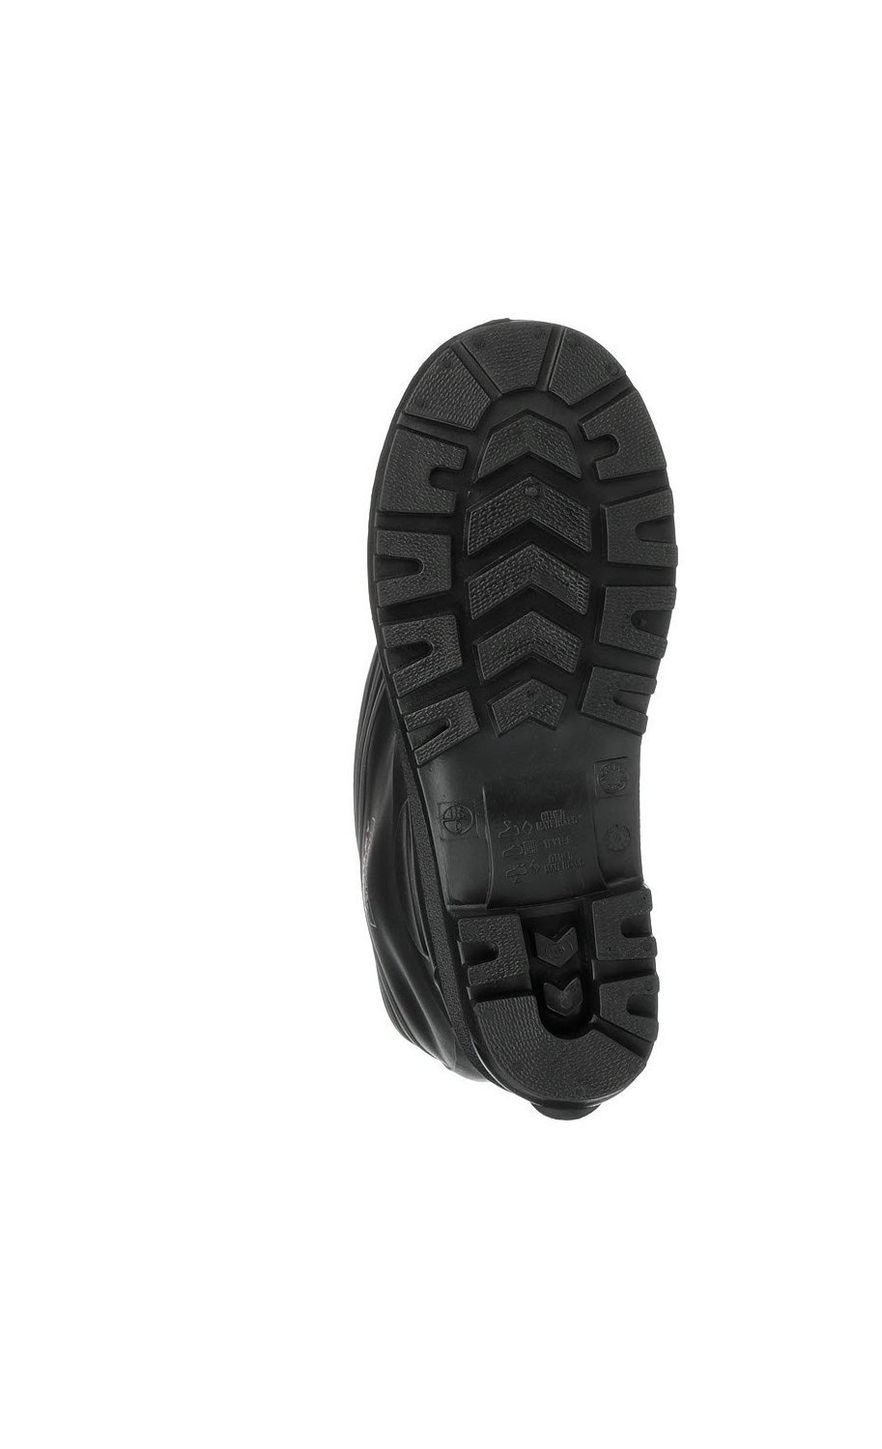 tingley-economical-steel-toe-pvc-rubber-work-boots-31251-15-tall-sole.jpg